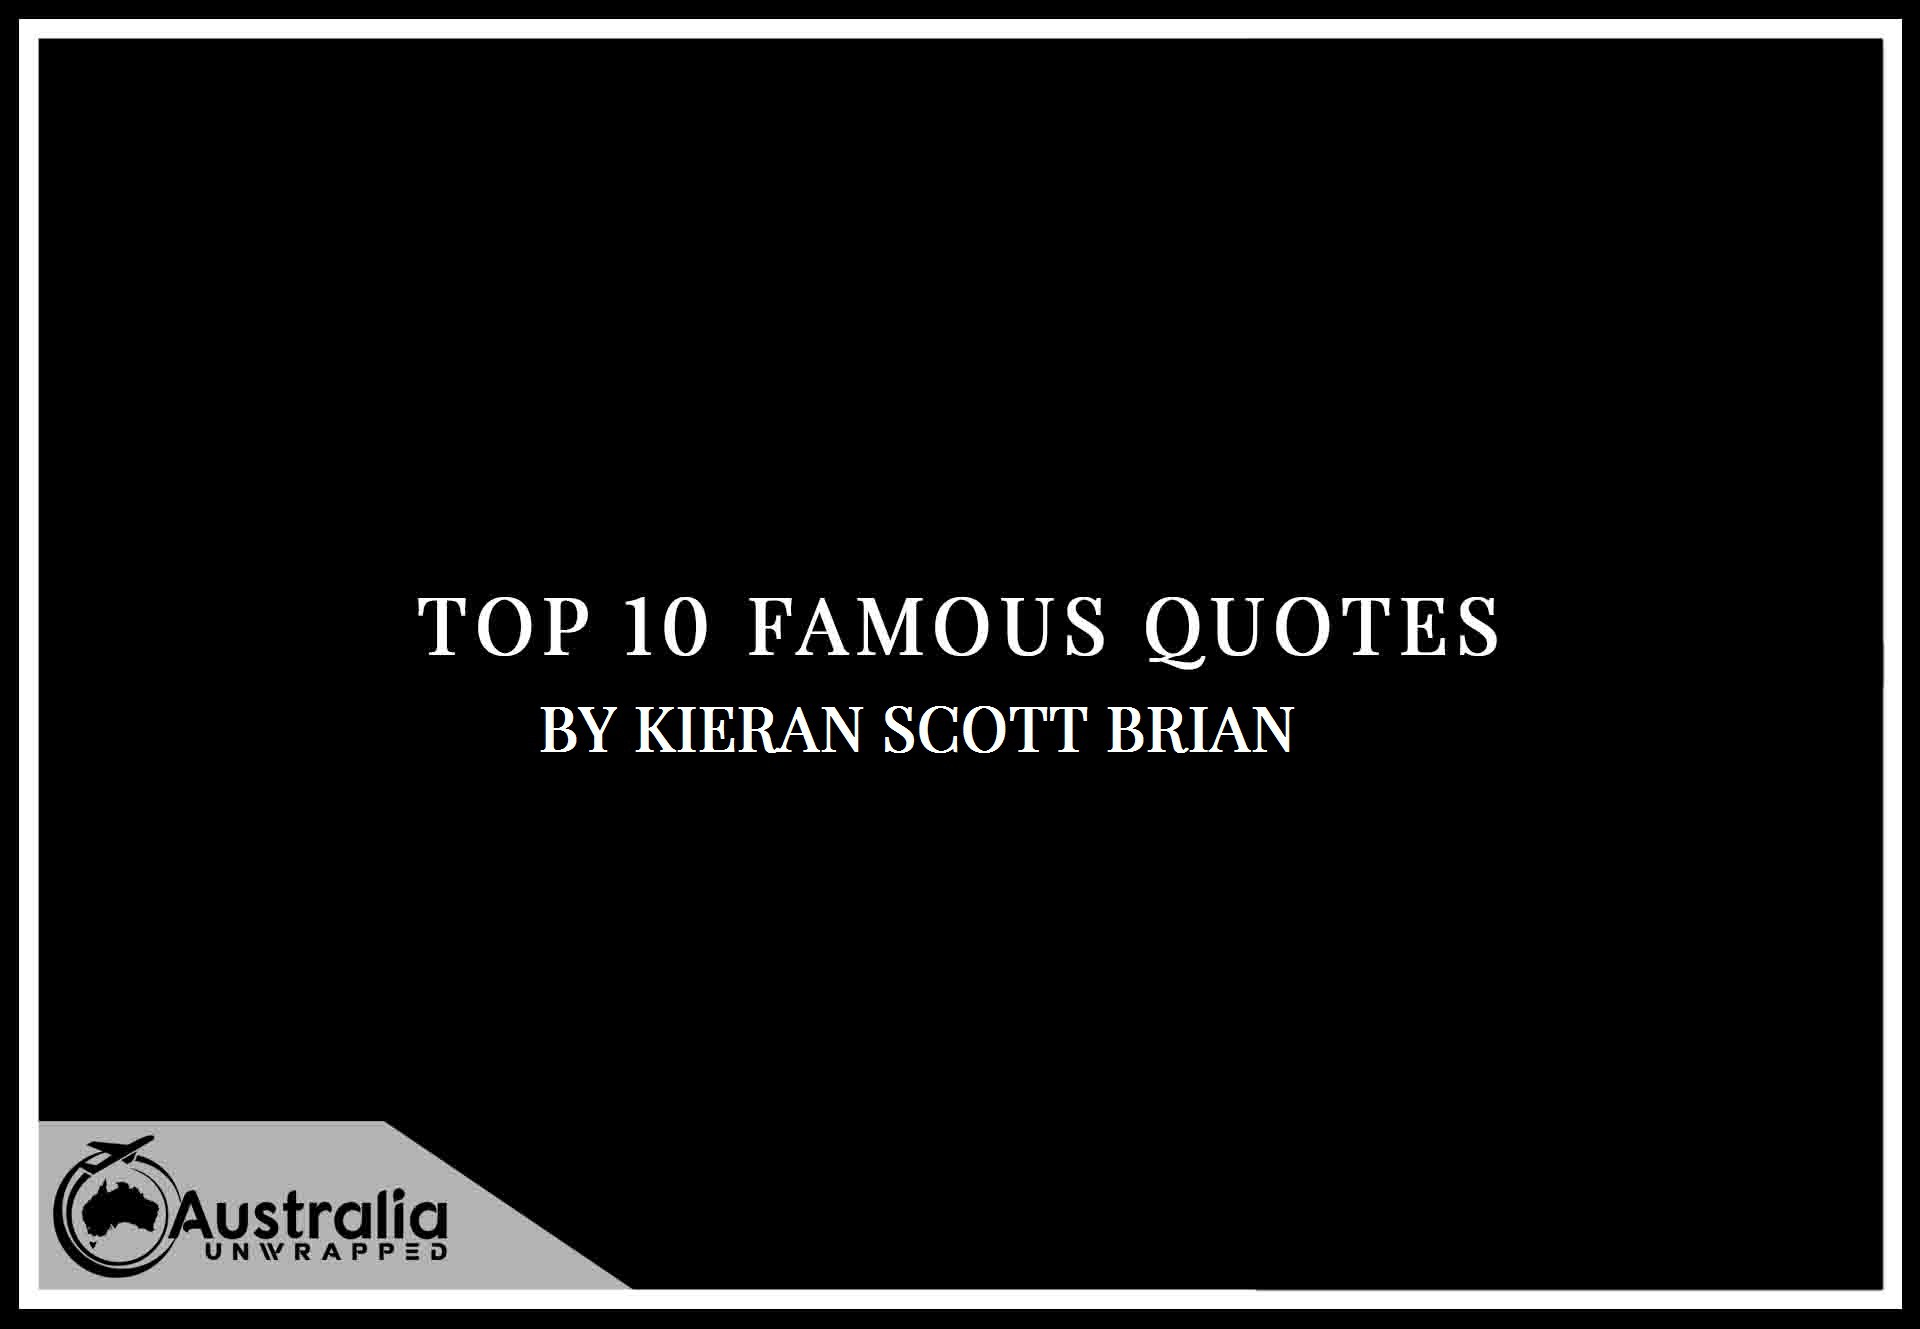 Kieran Scott's Top 10 Popular and Famous Quotes